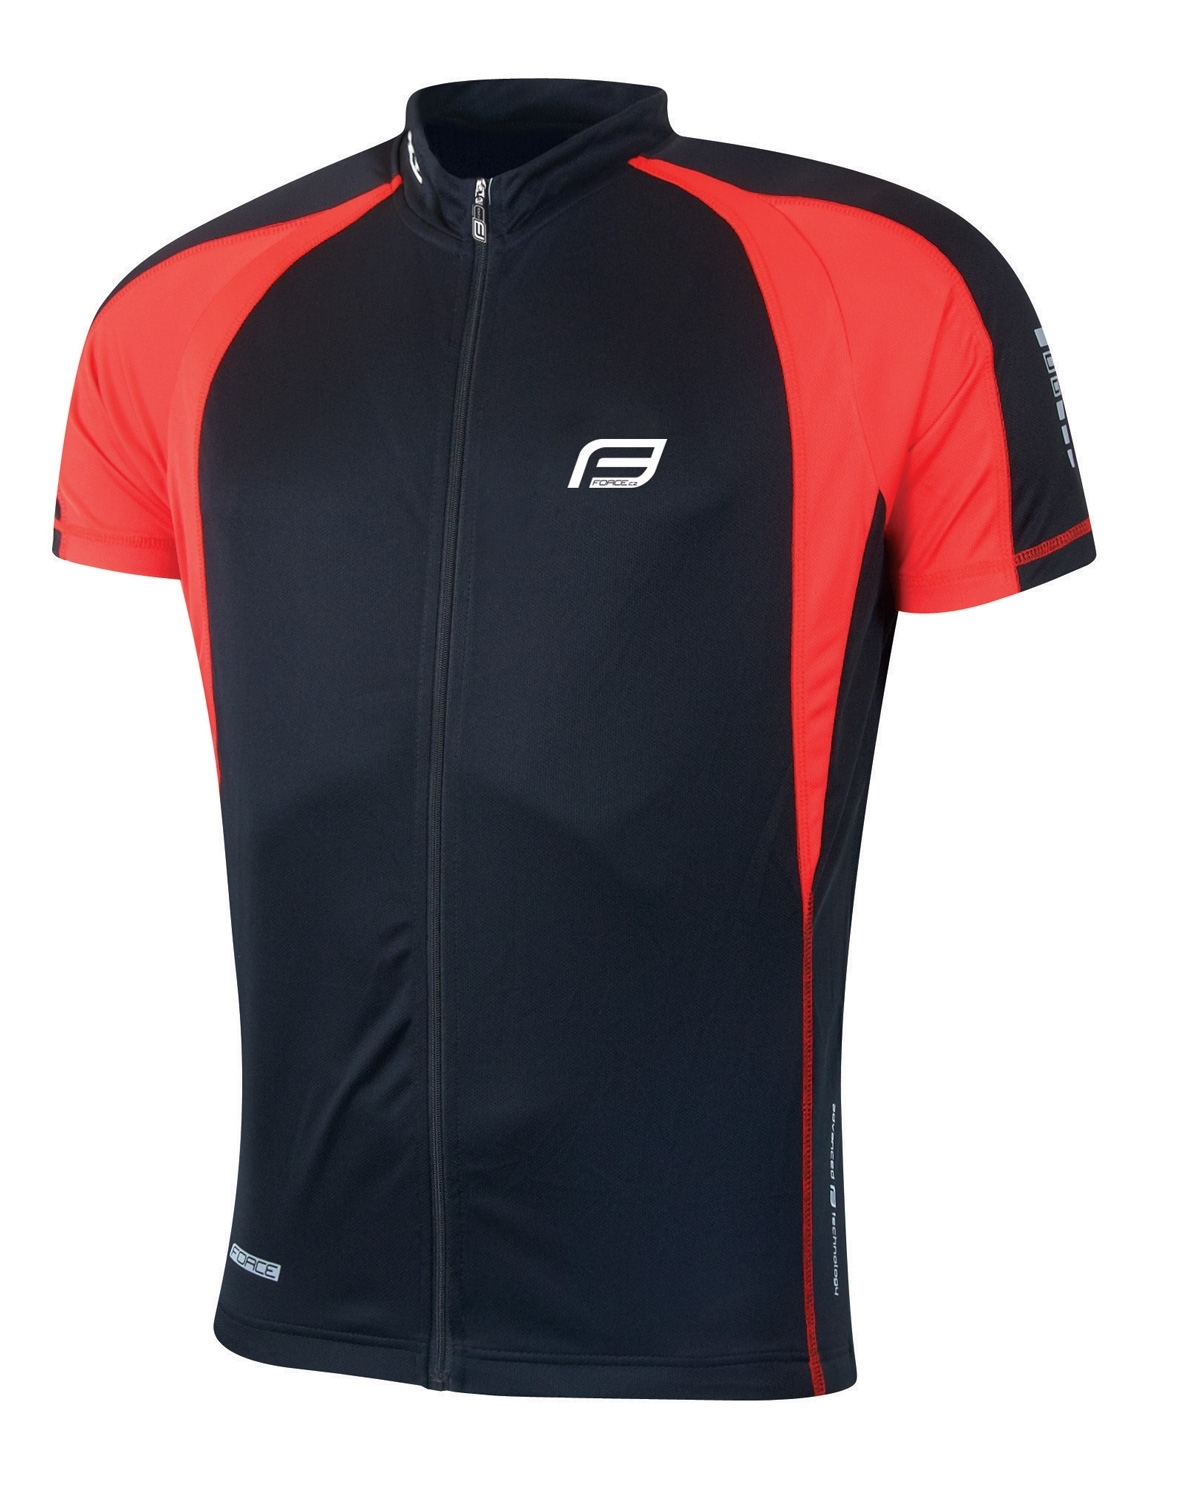 dres FORCE T10